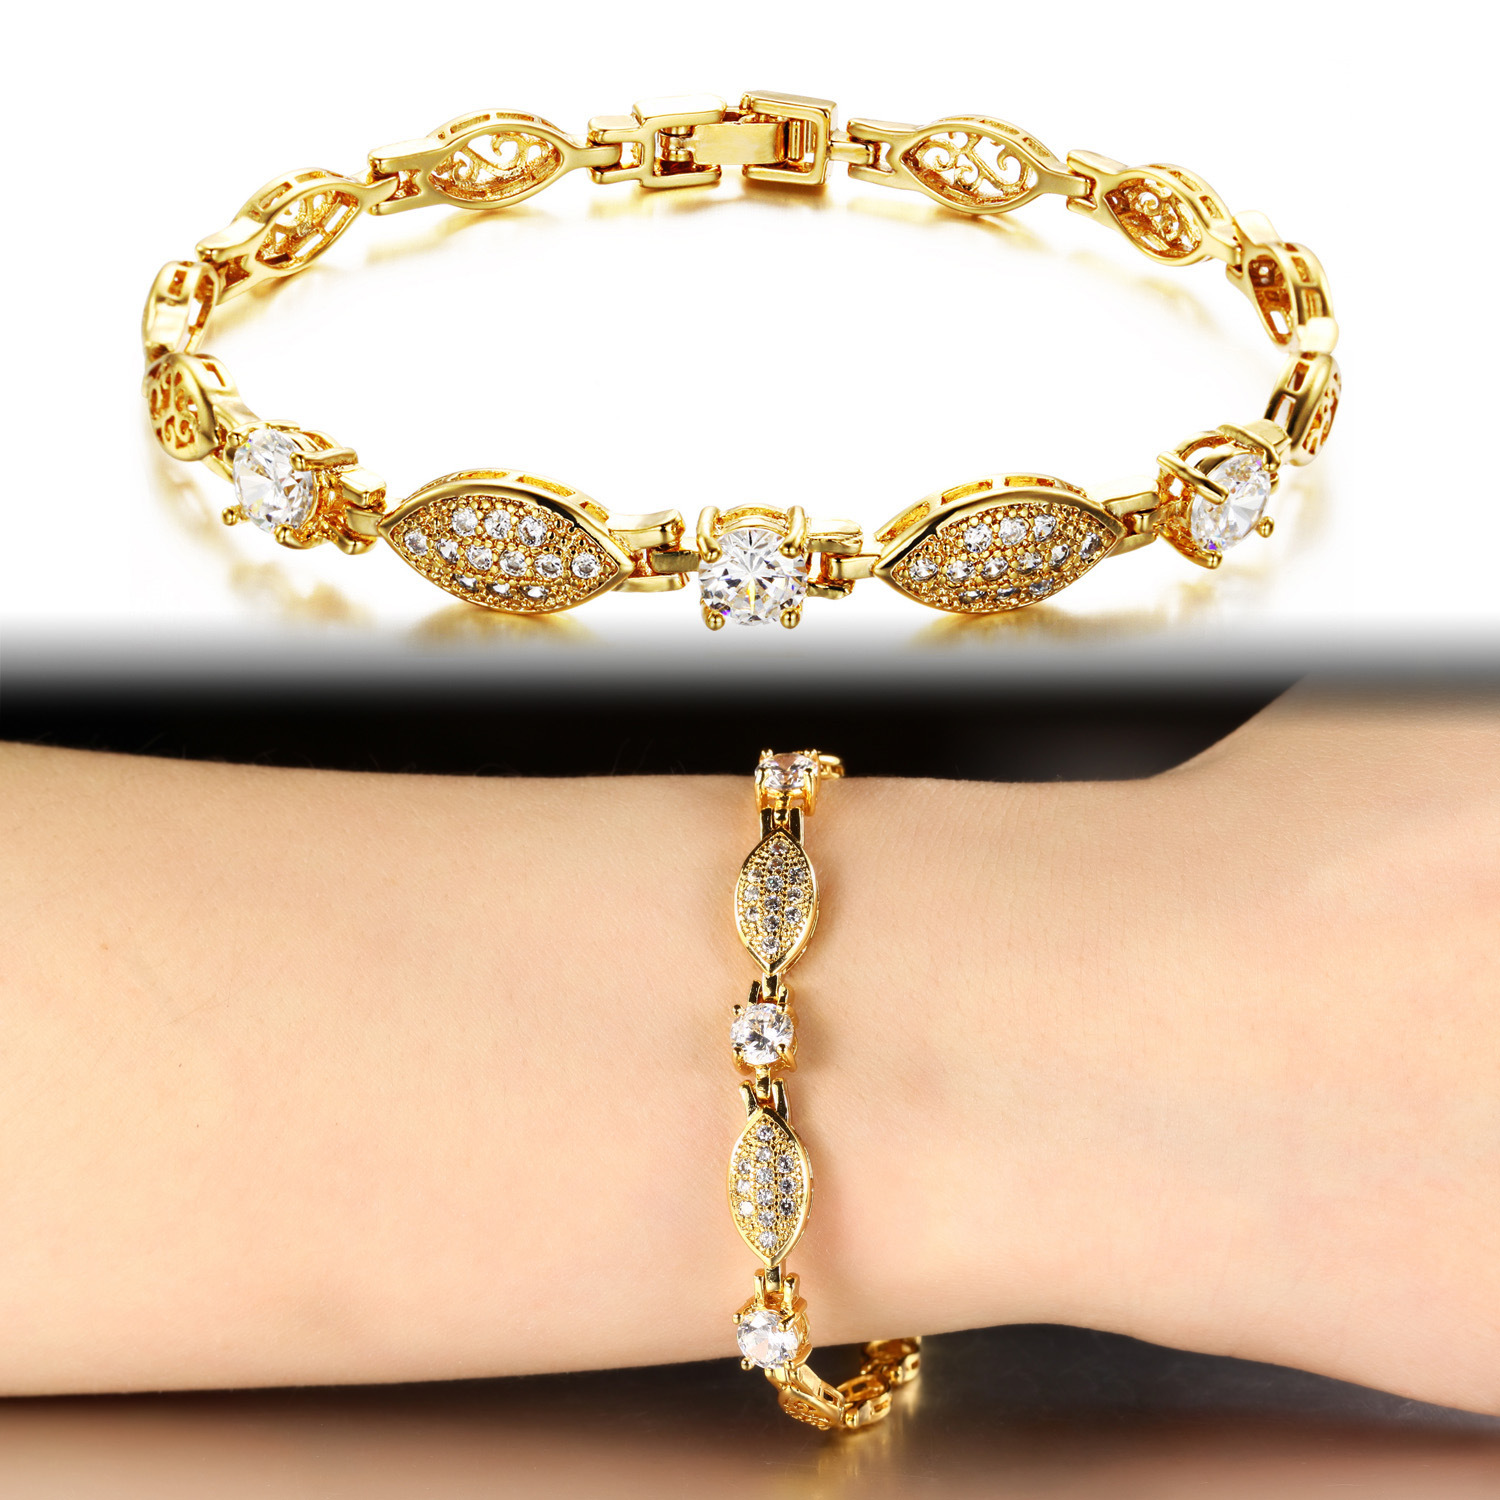 gemstones bangles forte broome single of bracelet for this flex bz stacking diamonds part these pav karat are collection rose gold diamond fine a is designers the and jewelry lightweight bangle new perfect by link